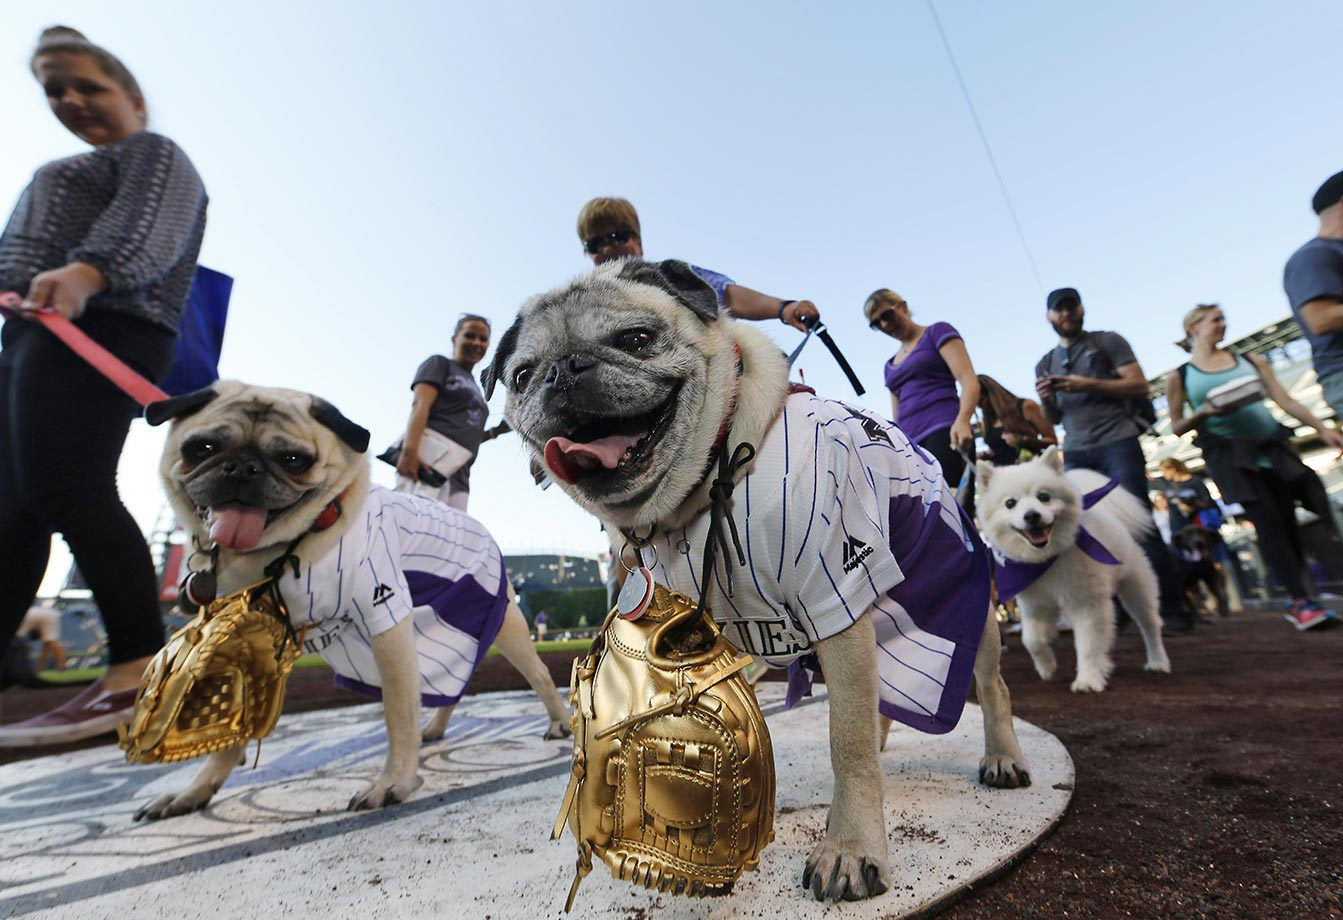 Another of those Bark in the Park event was held in Denver last week.